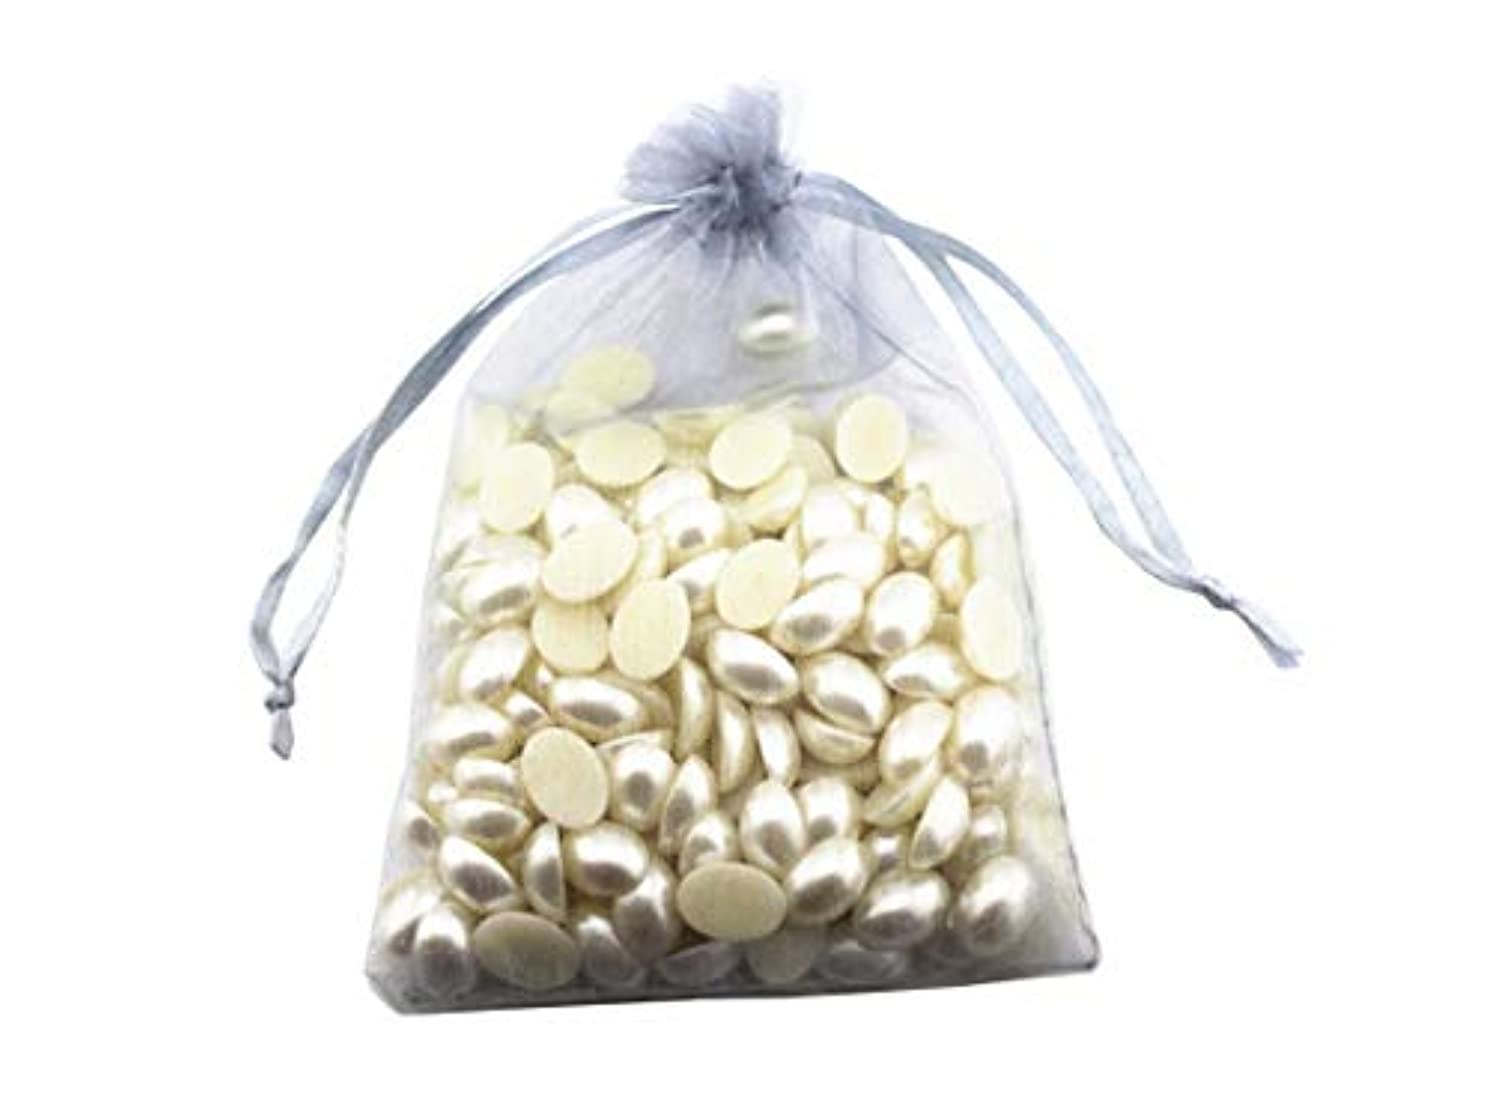 8 x 12 Inch 100 Drawstring Bags Gold Silver Fabric Jewelry Gift Pouch Candy Pouch Wedding Favors (Silver)